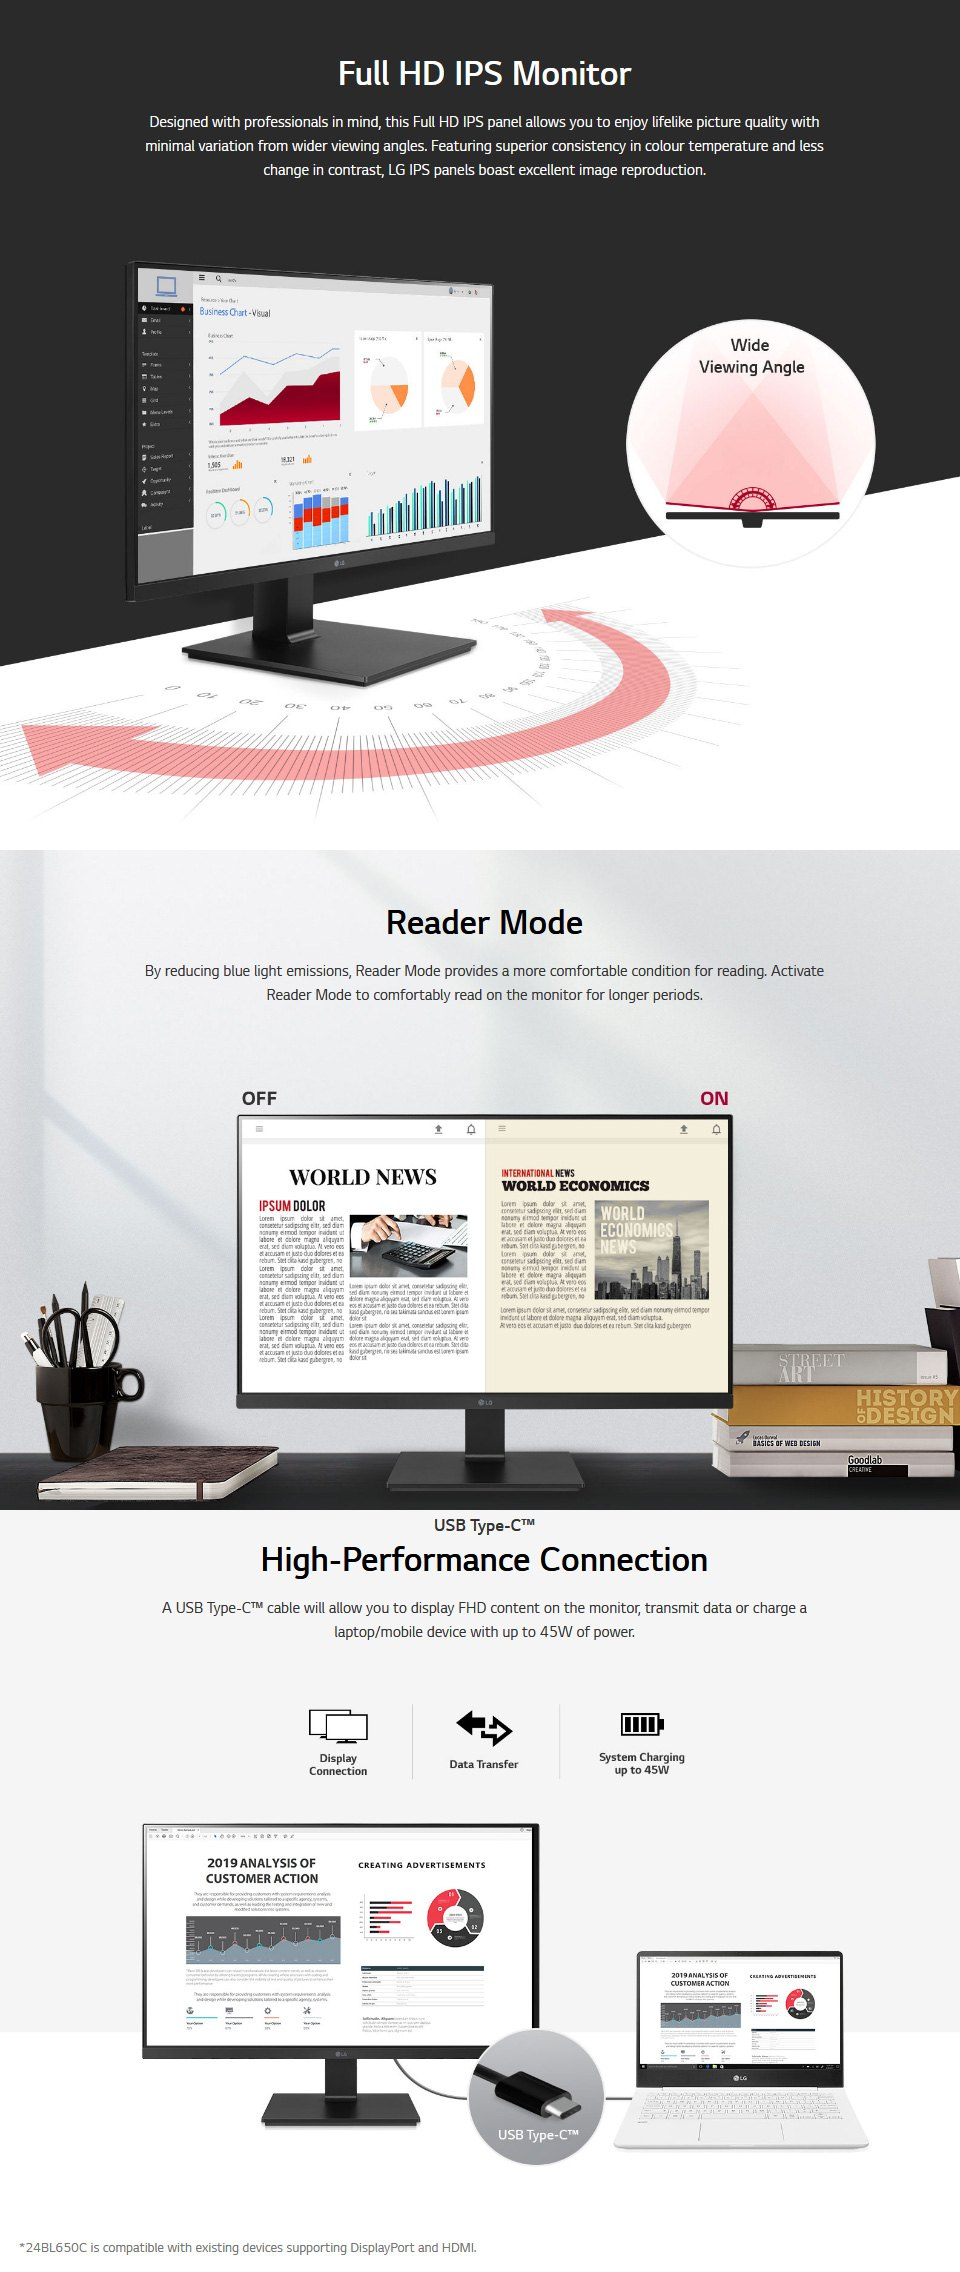 LG 24BL650C-B FHD IPS USB-C 24in Monitor features